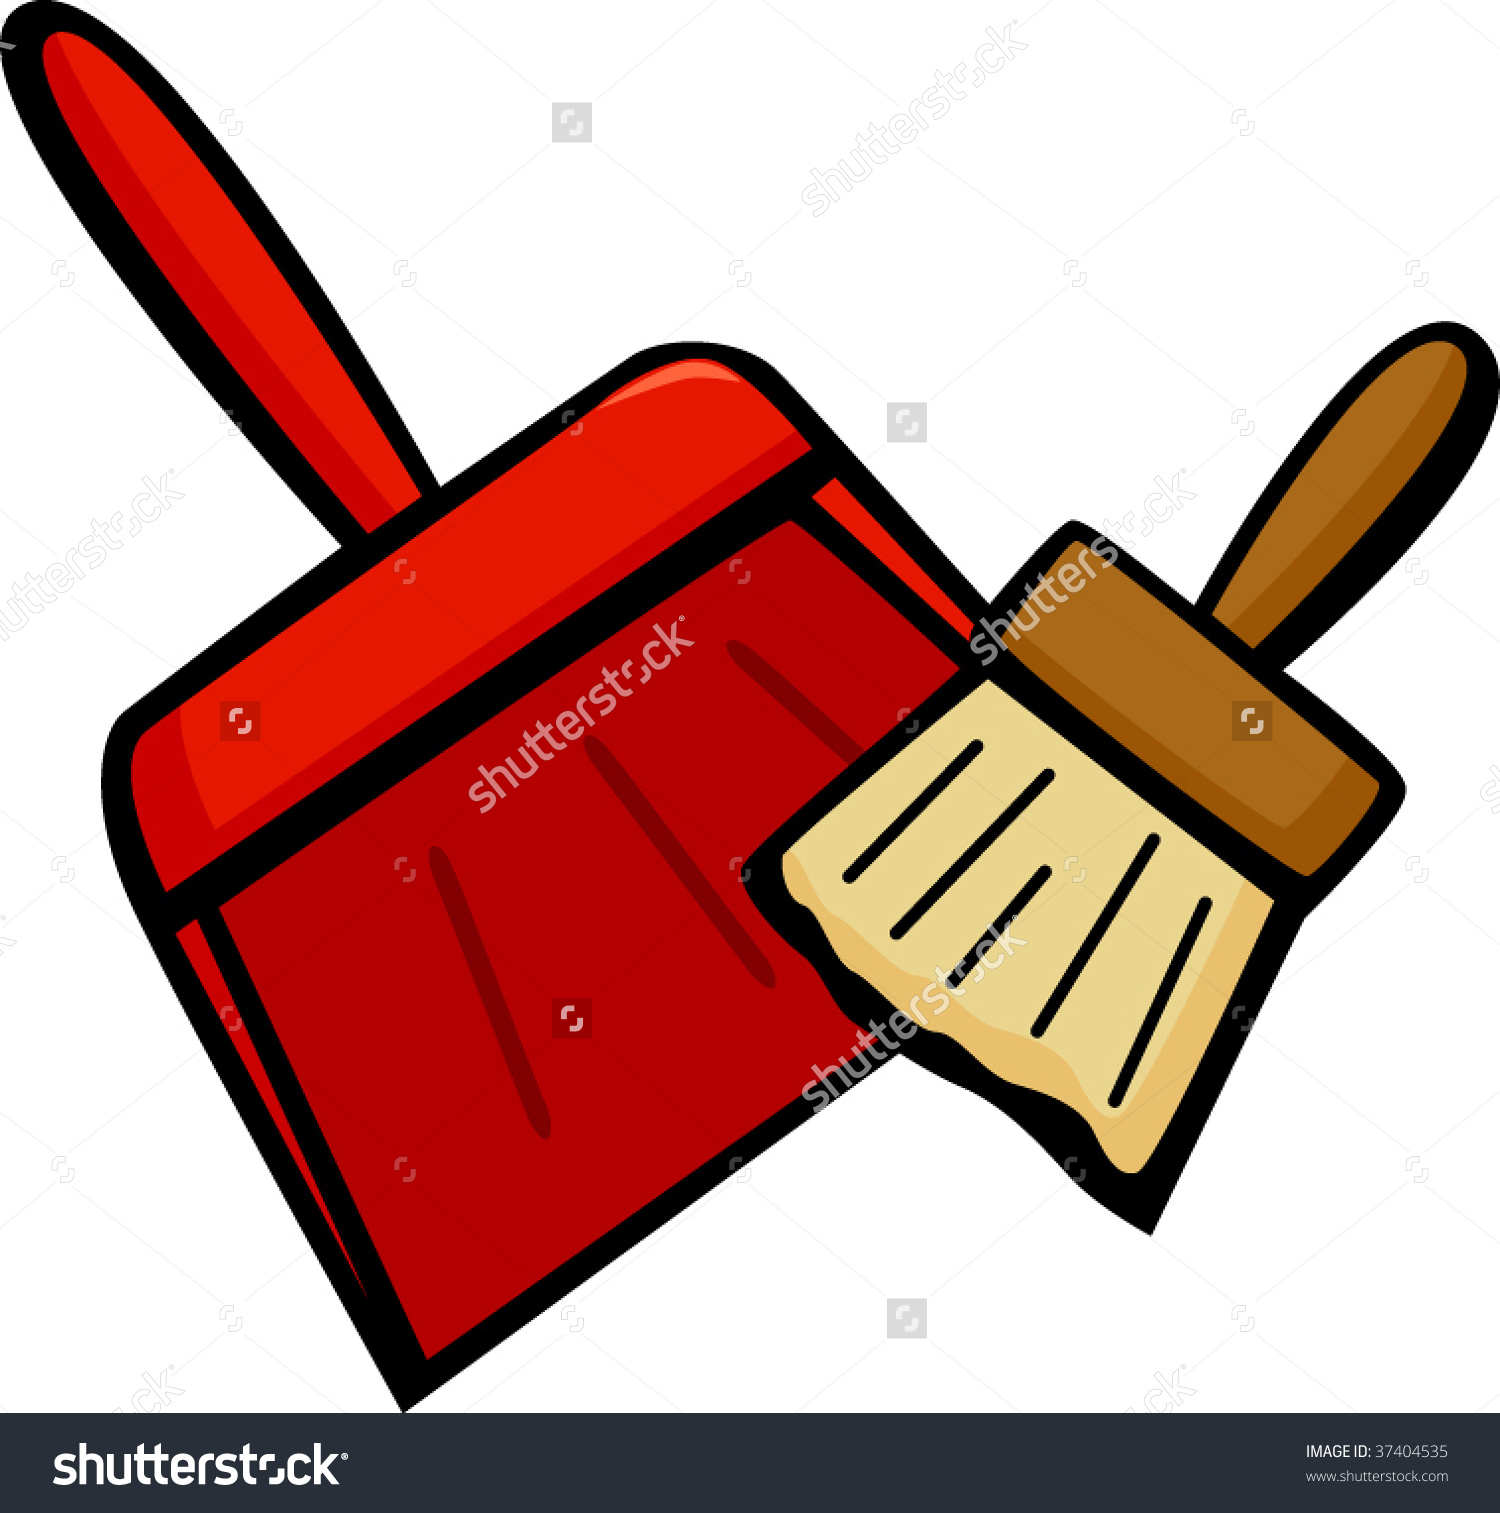 Dustpan and broom clipart.